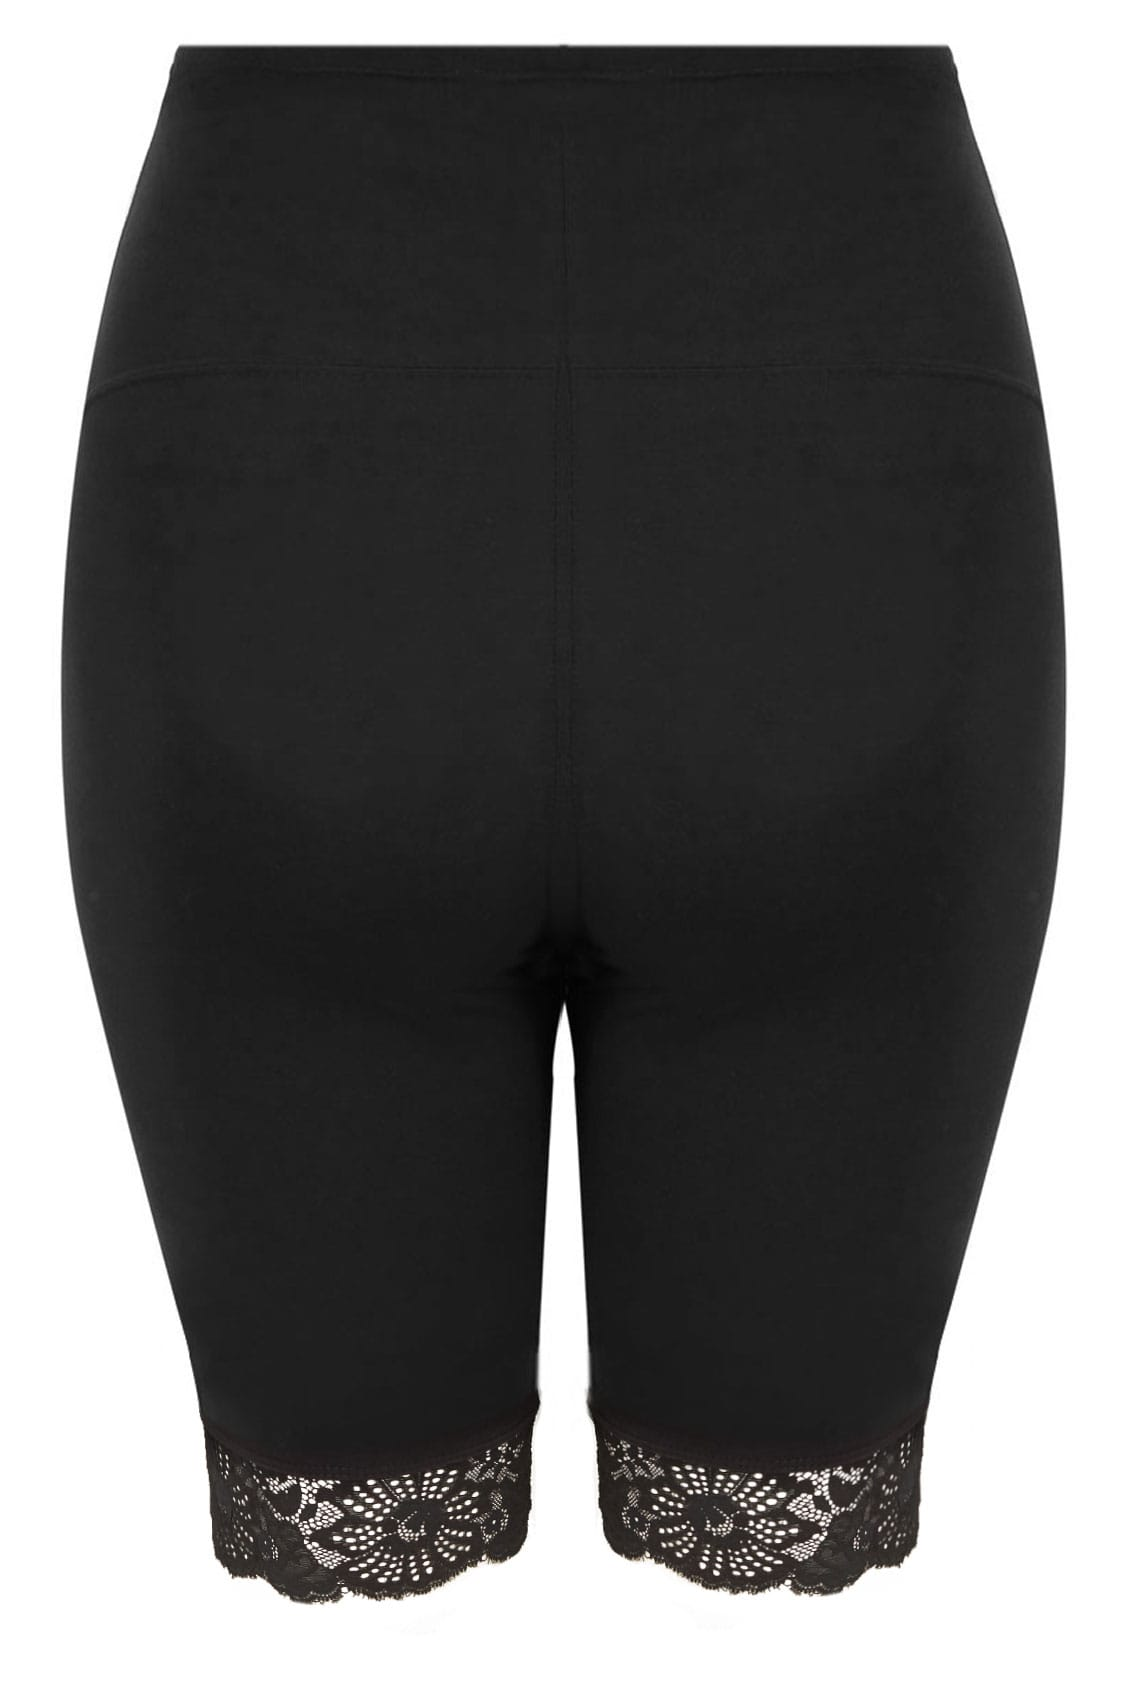 73db74a818c Hover over the images above to enlarge. BUMP IT UP MATERNITY Black Legging  Shorts With Lace Trim